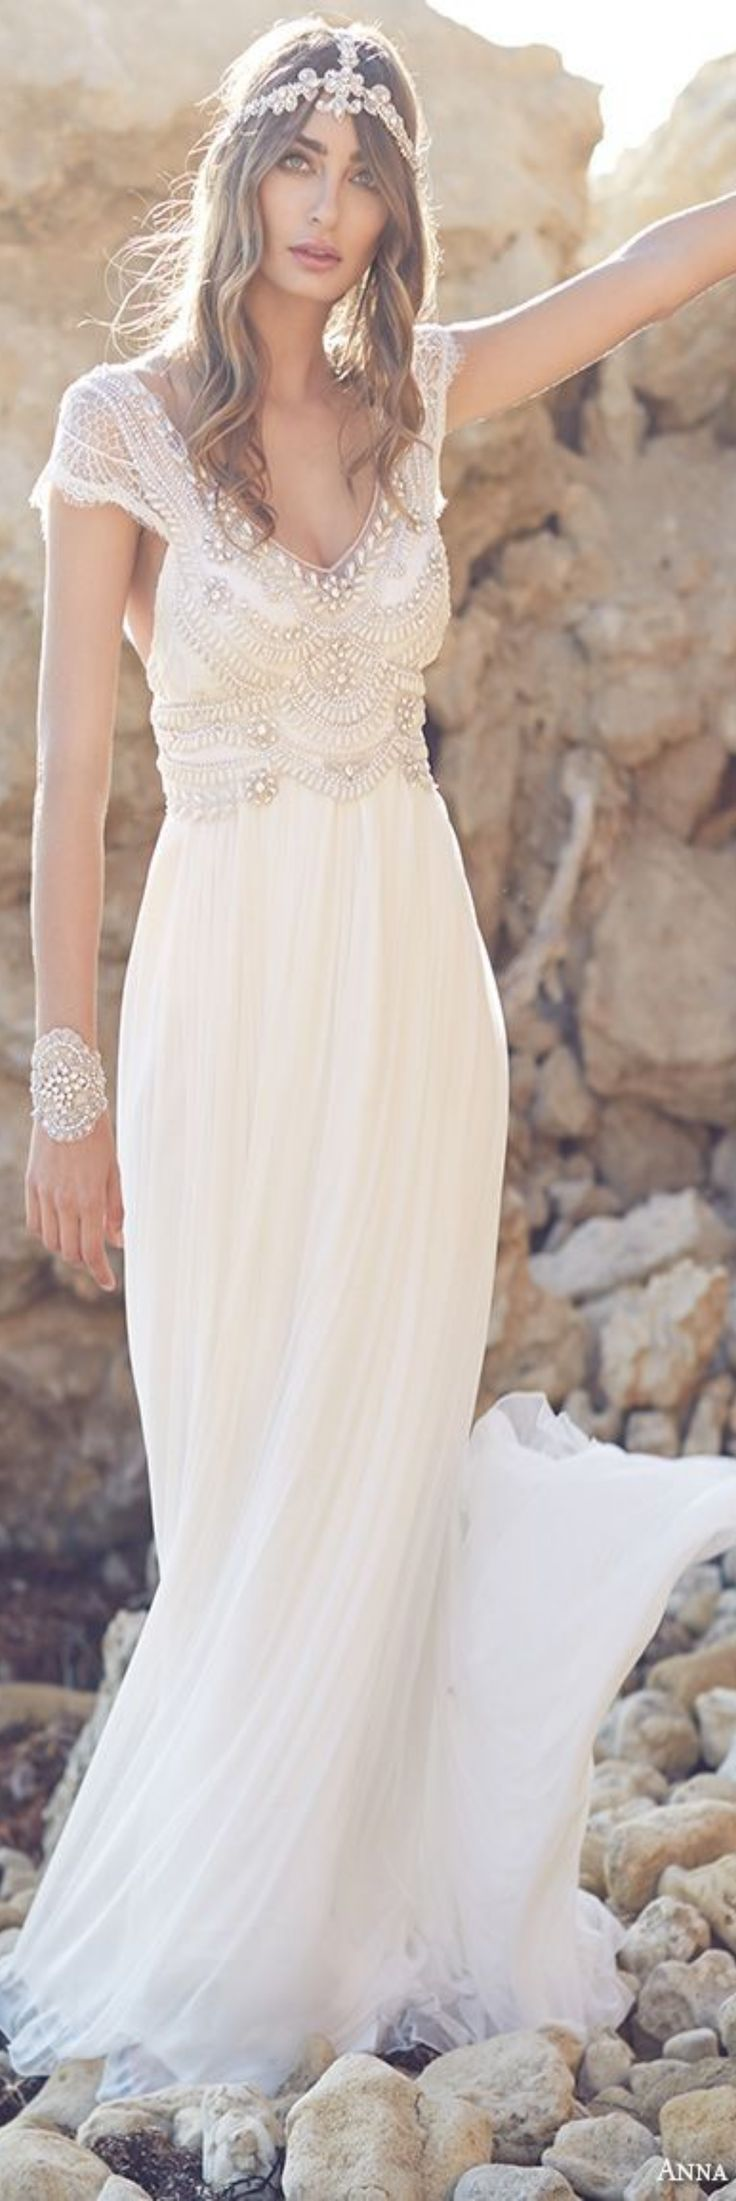 BEACH WEDDING dress boho style